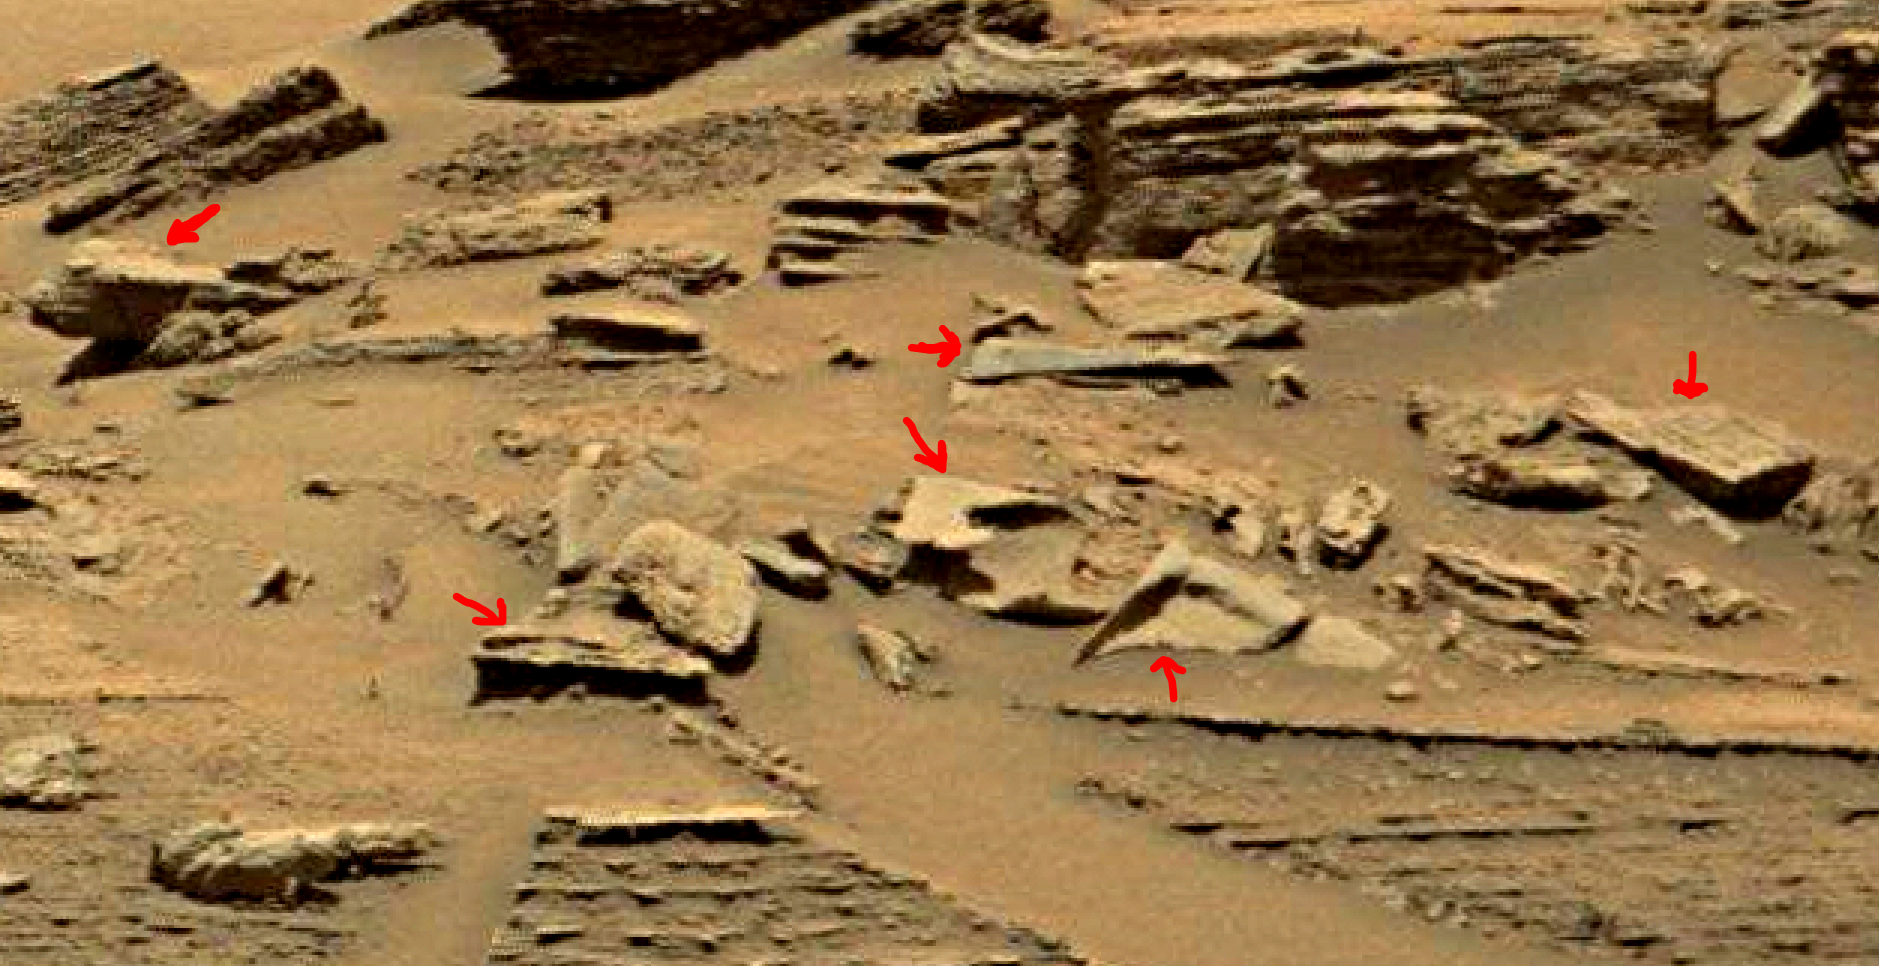 mars sol 1353 anomaly-artifacts 6e was life on mars